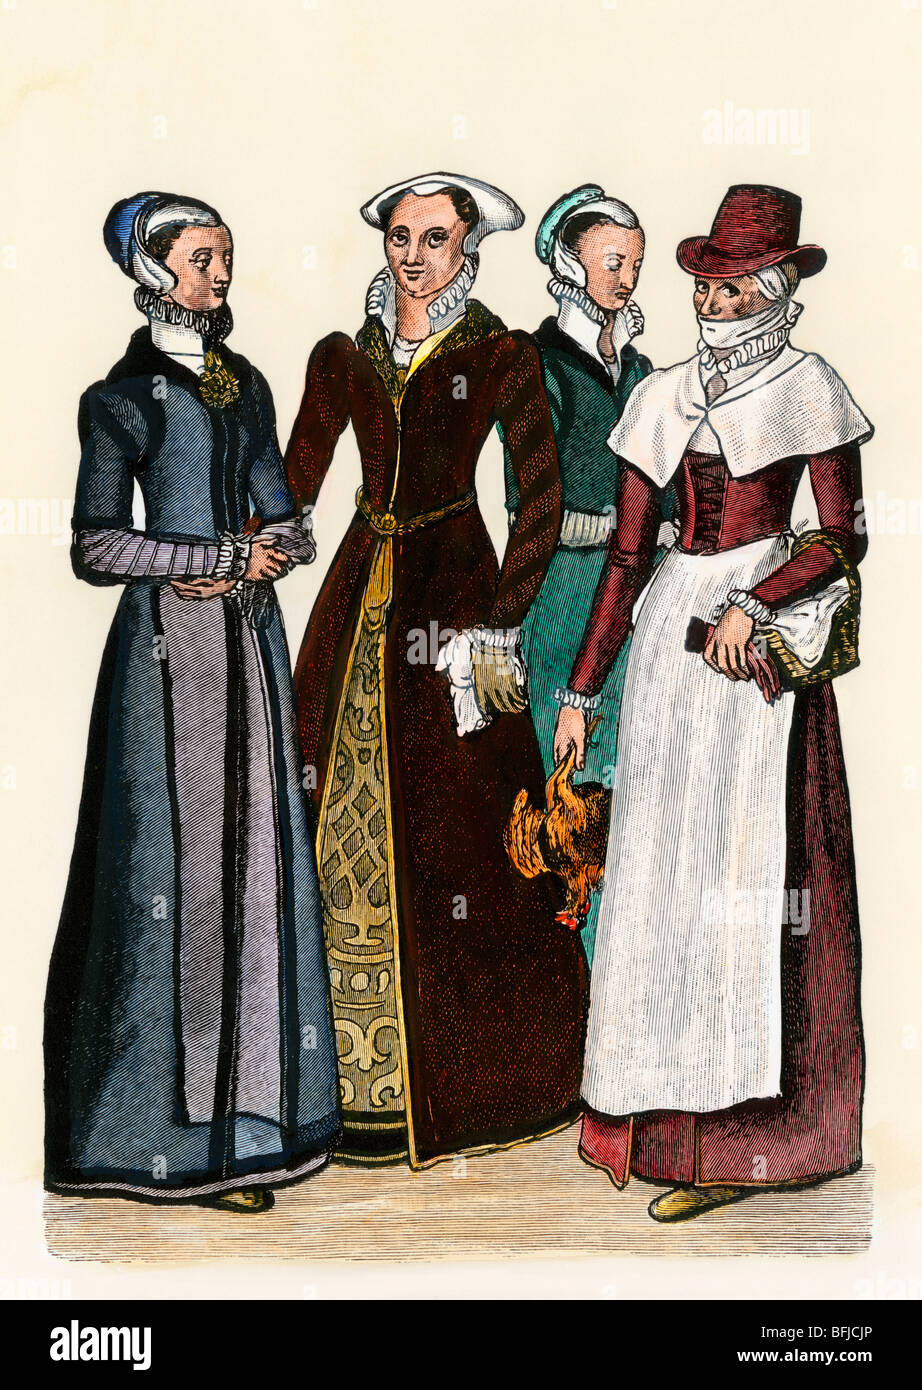 an overview of womens fashion in elizabethan england The elizabethan era 1558 - 1603, is known for garments made of wool and linen that were heavy and of a striking design including such fashion icons as the ruff.